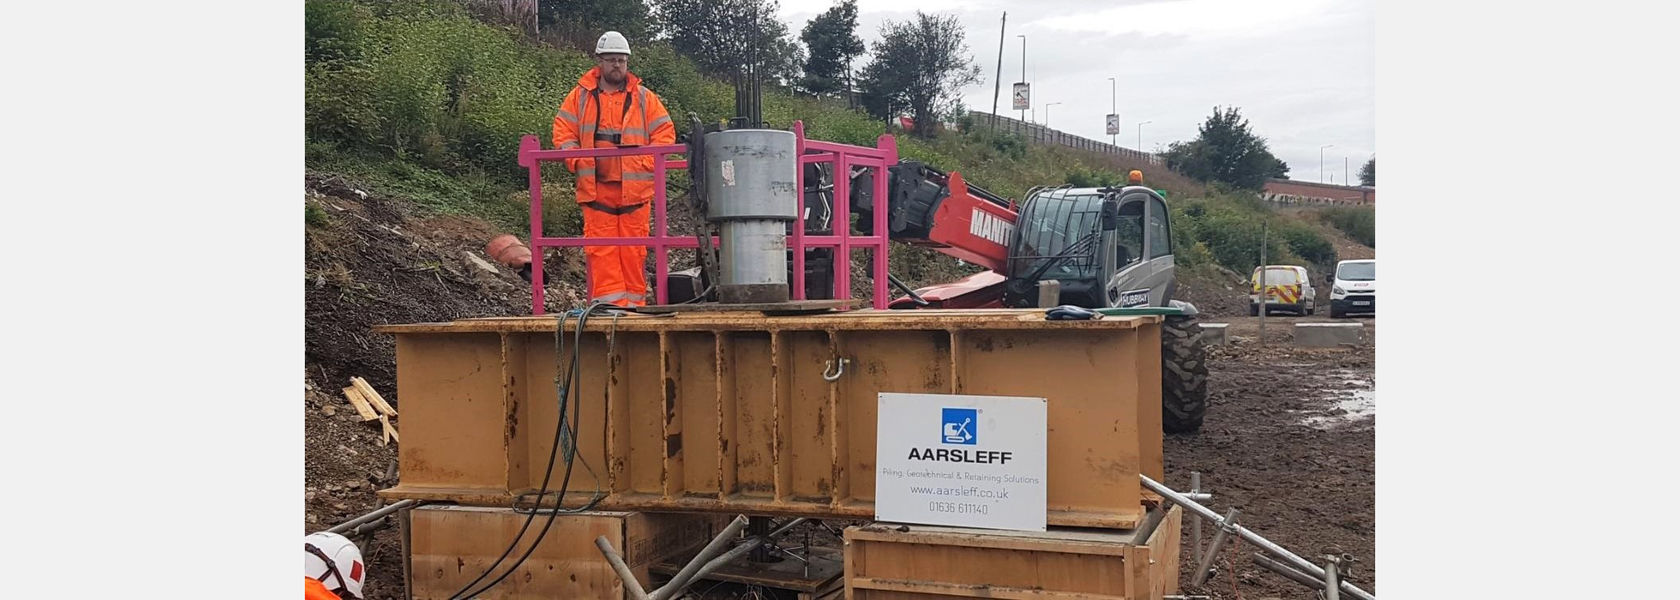 Aarsleff to work on Phase 3 of Sunderland Strategic Transport Corridor project